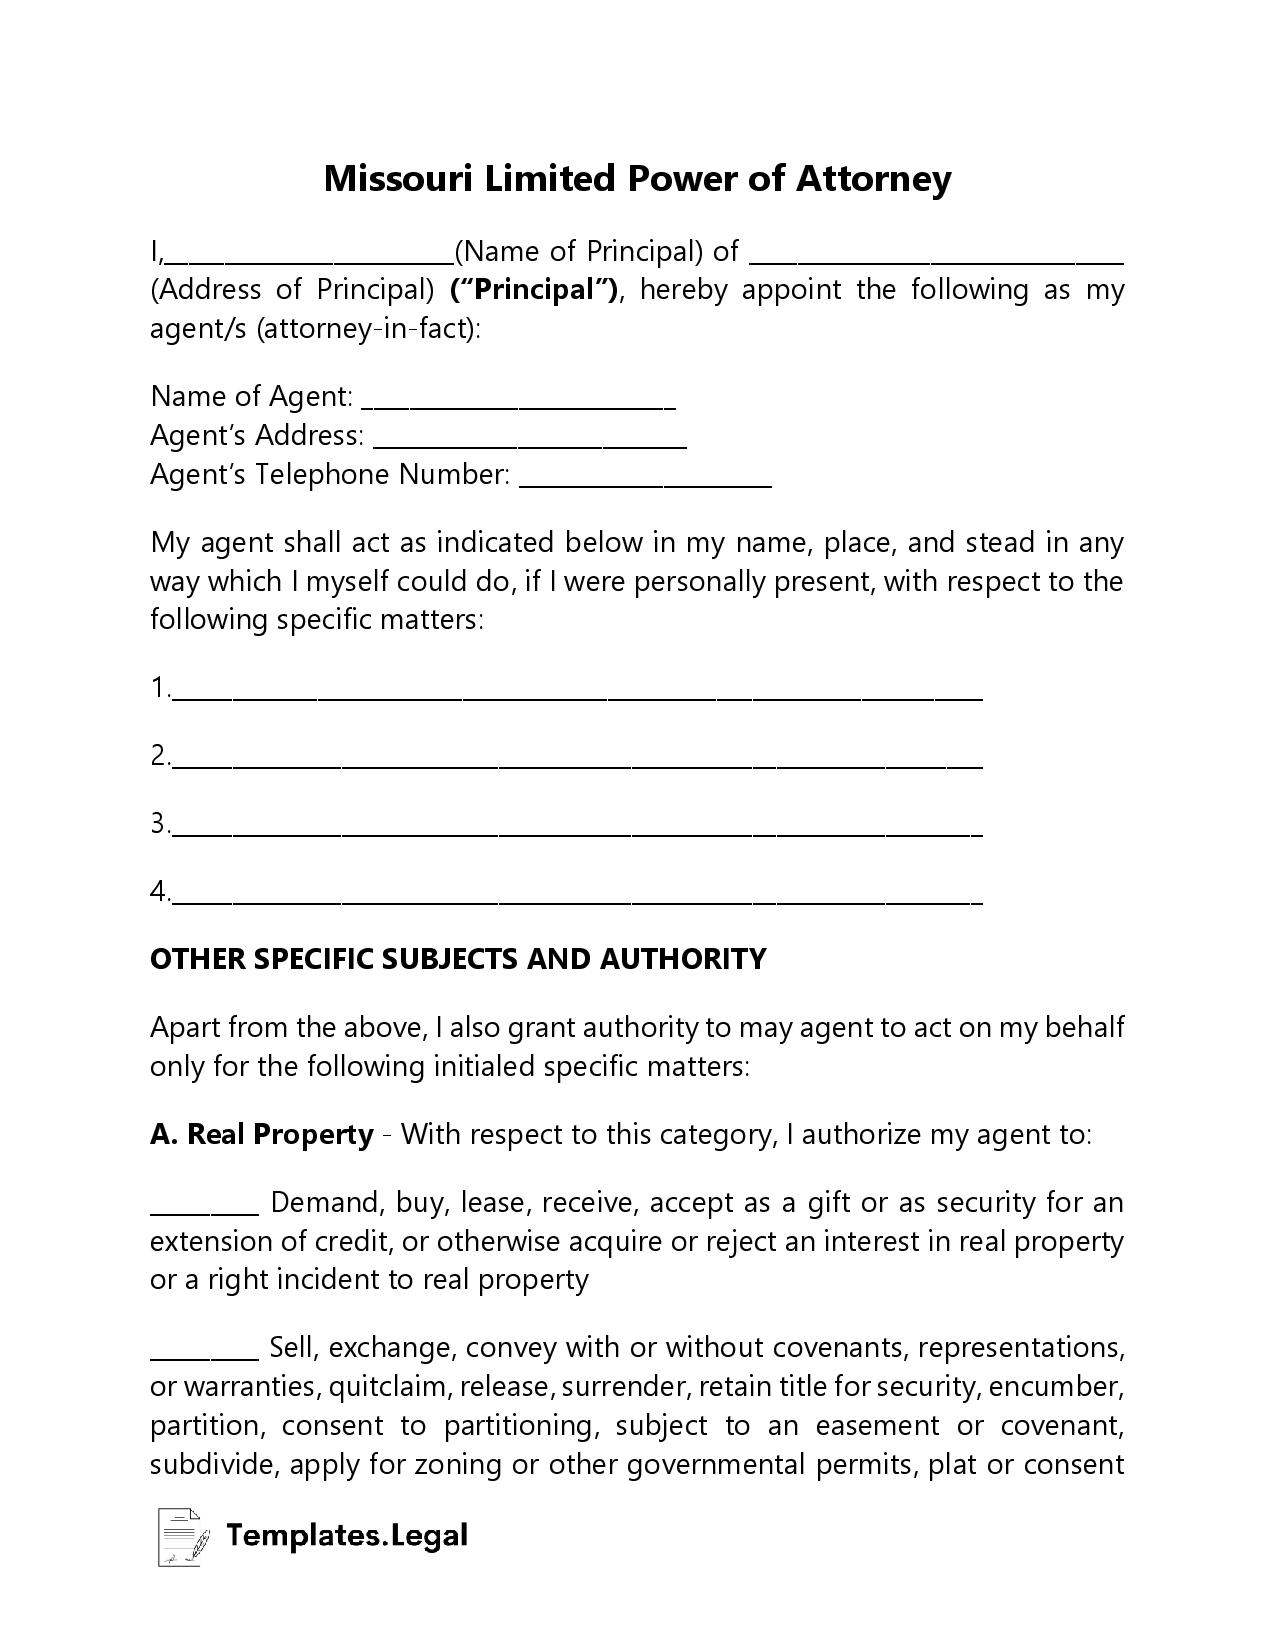 Missouri Limited Power of Attorney - Templates.Legal